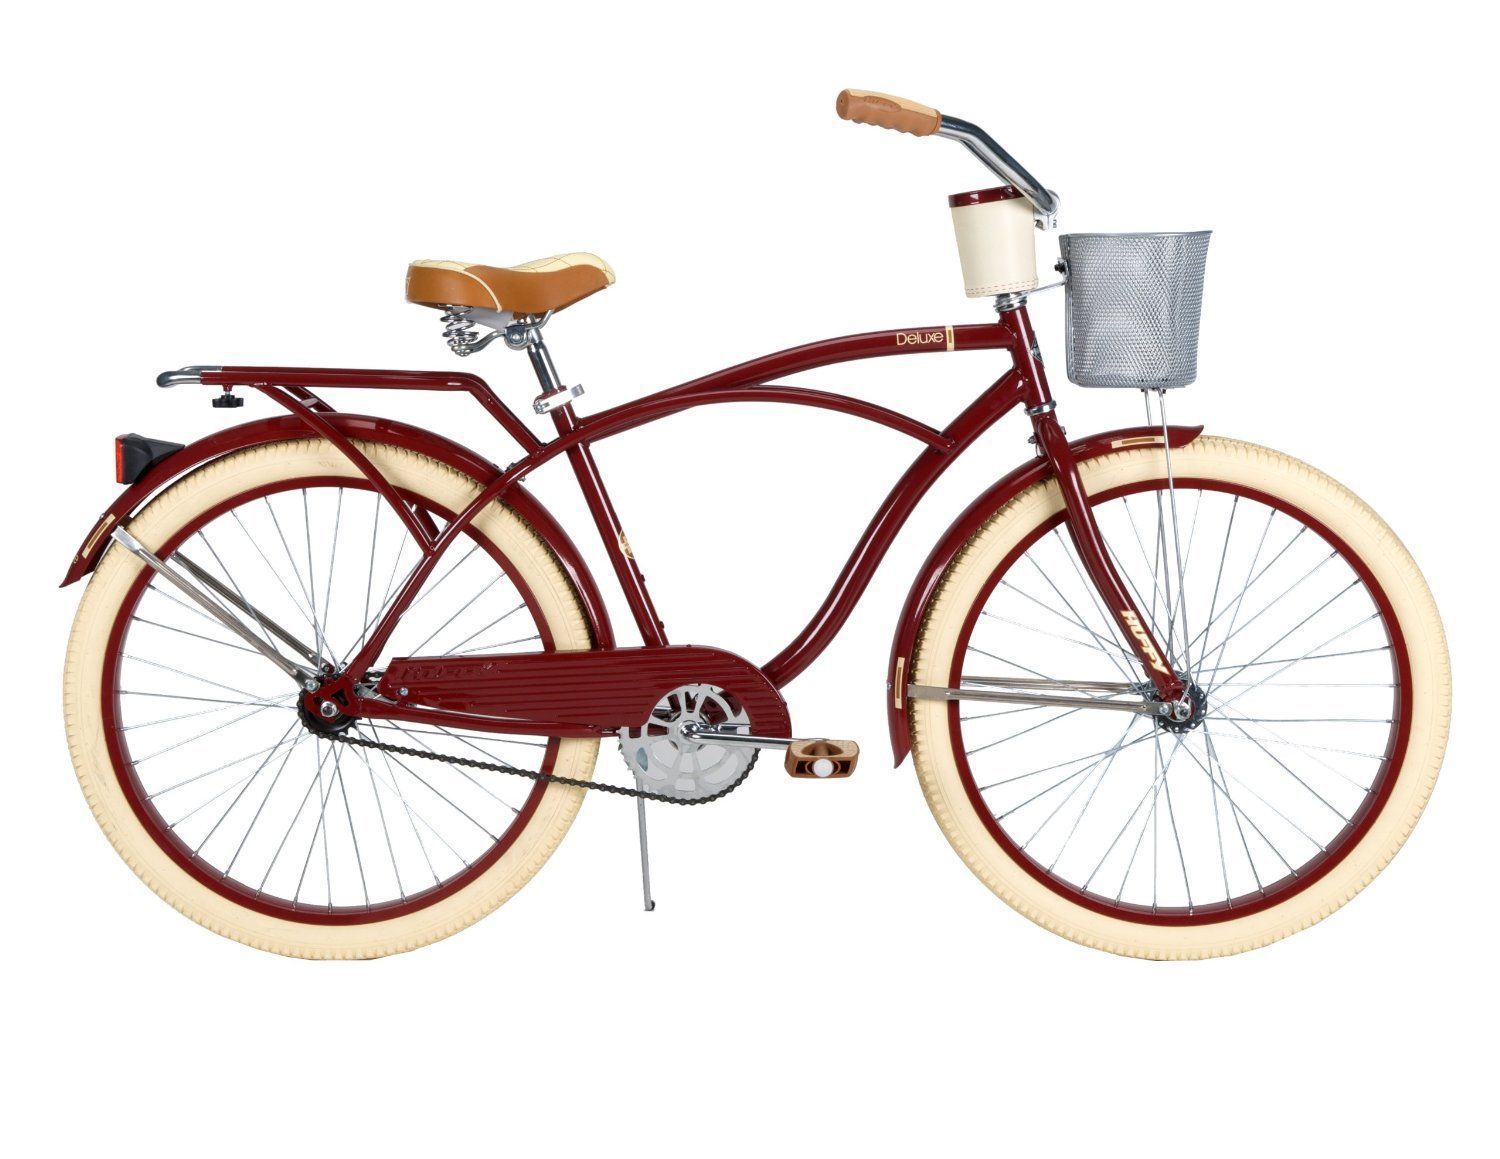 26quot Classic Vintage Cruiser Cycling Bike Beach Riding Bicycle W Storage